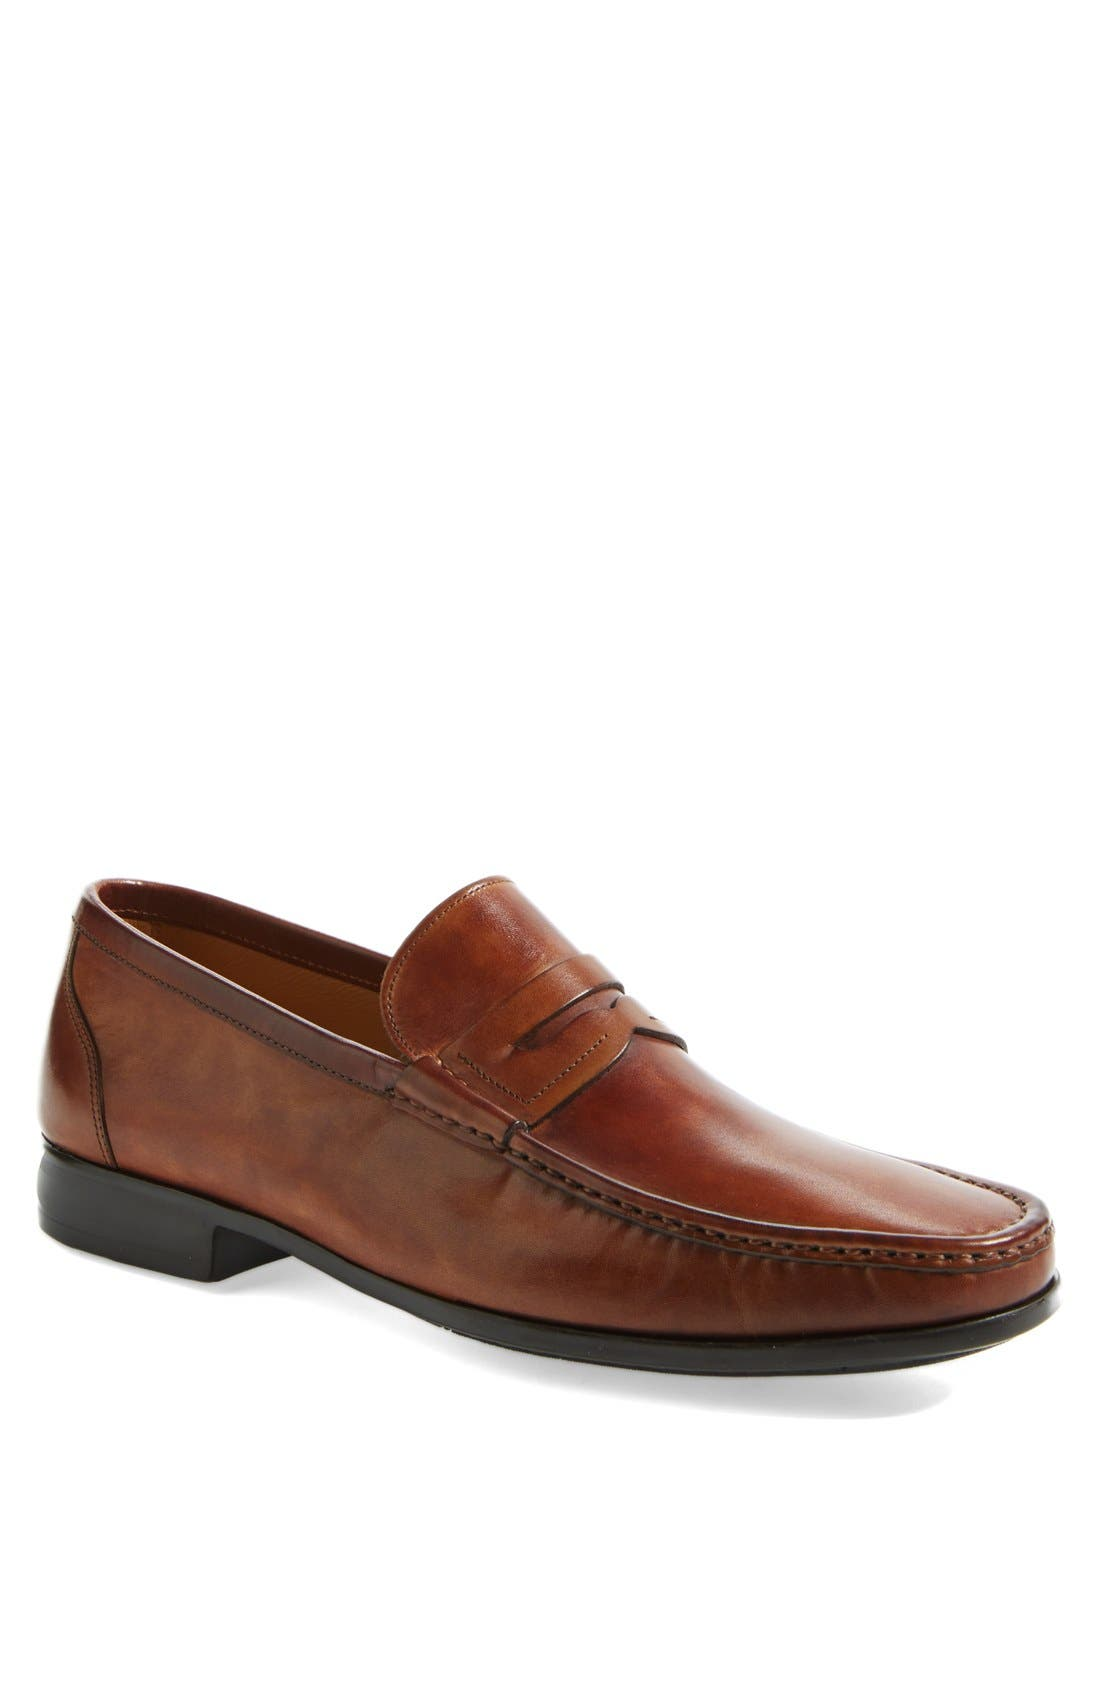 MAGNANNI 'Ares' Penny Loafer